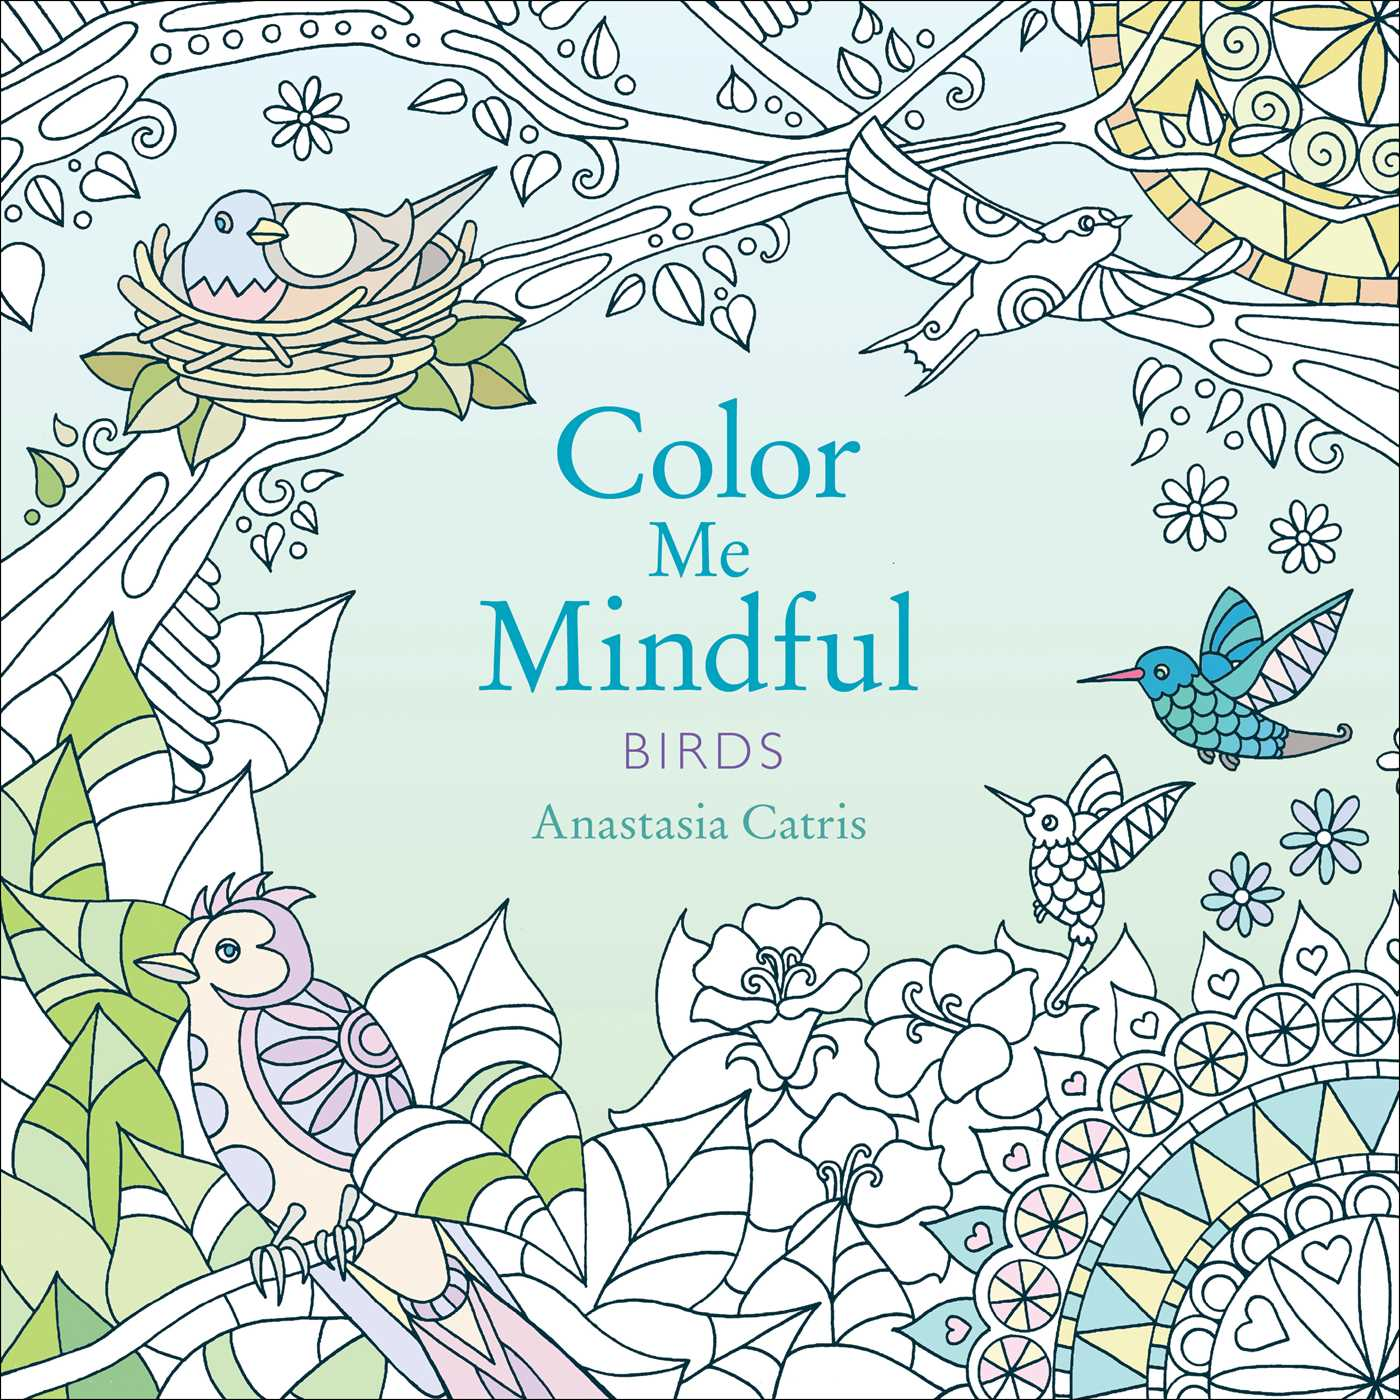 Color Me Mindful Books by Anastasia Catris from Simon Schuster